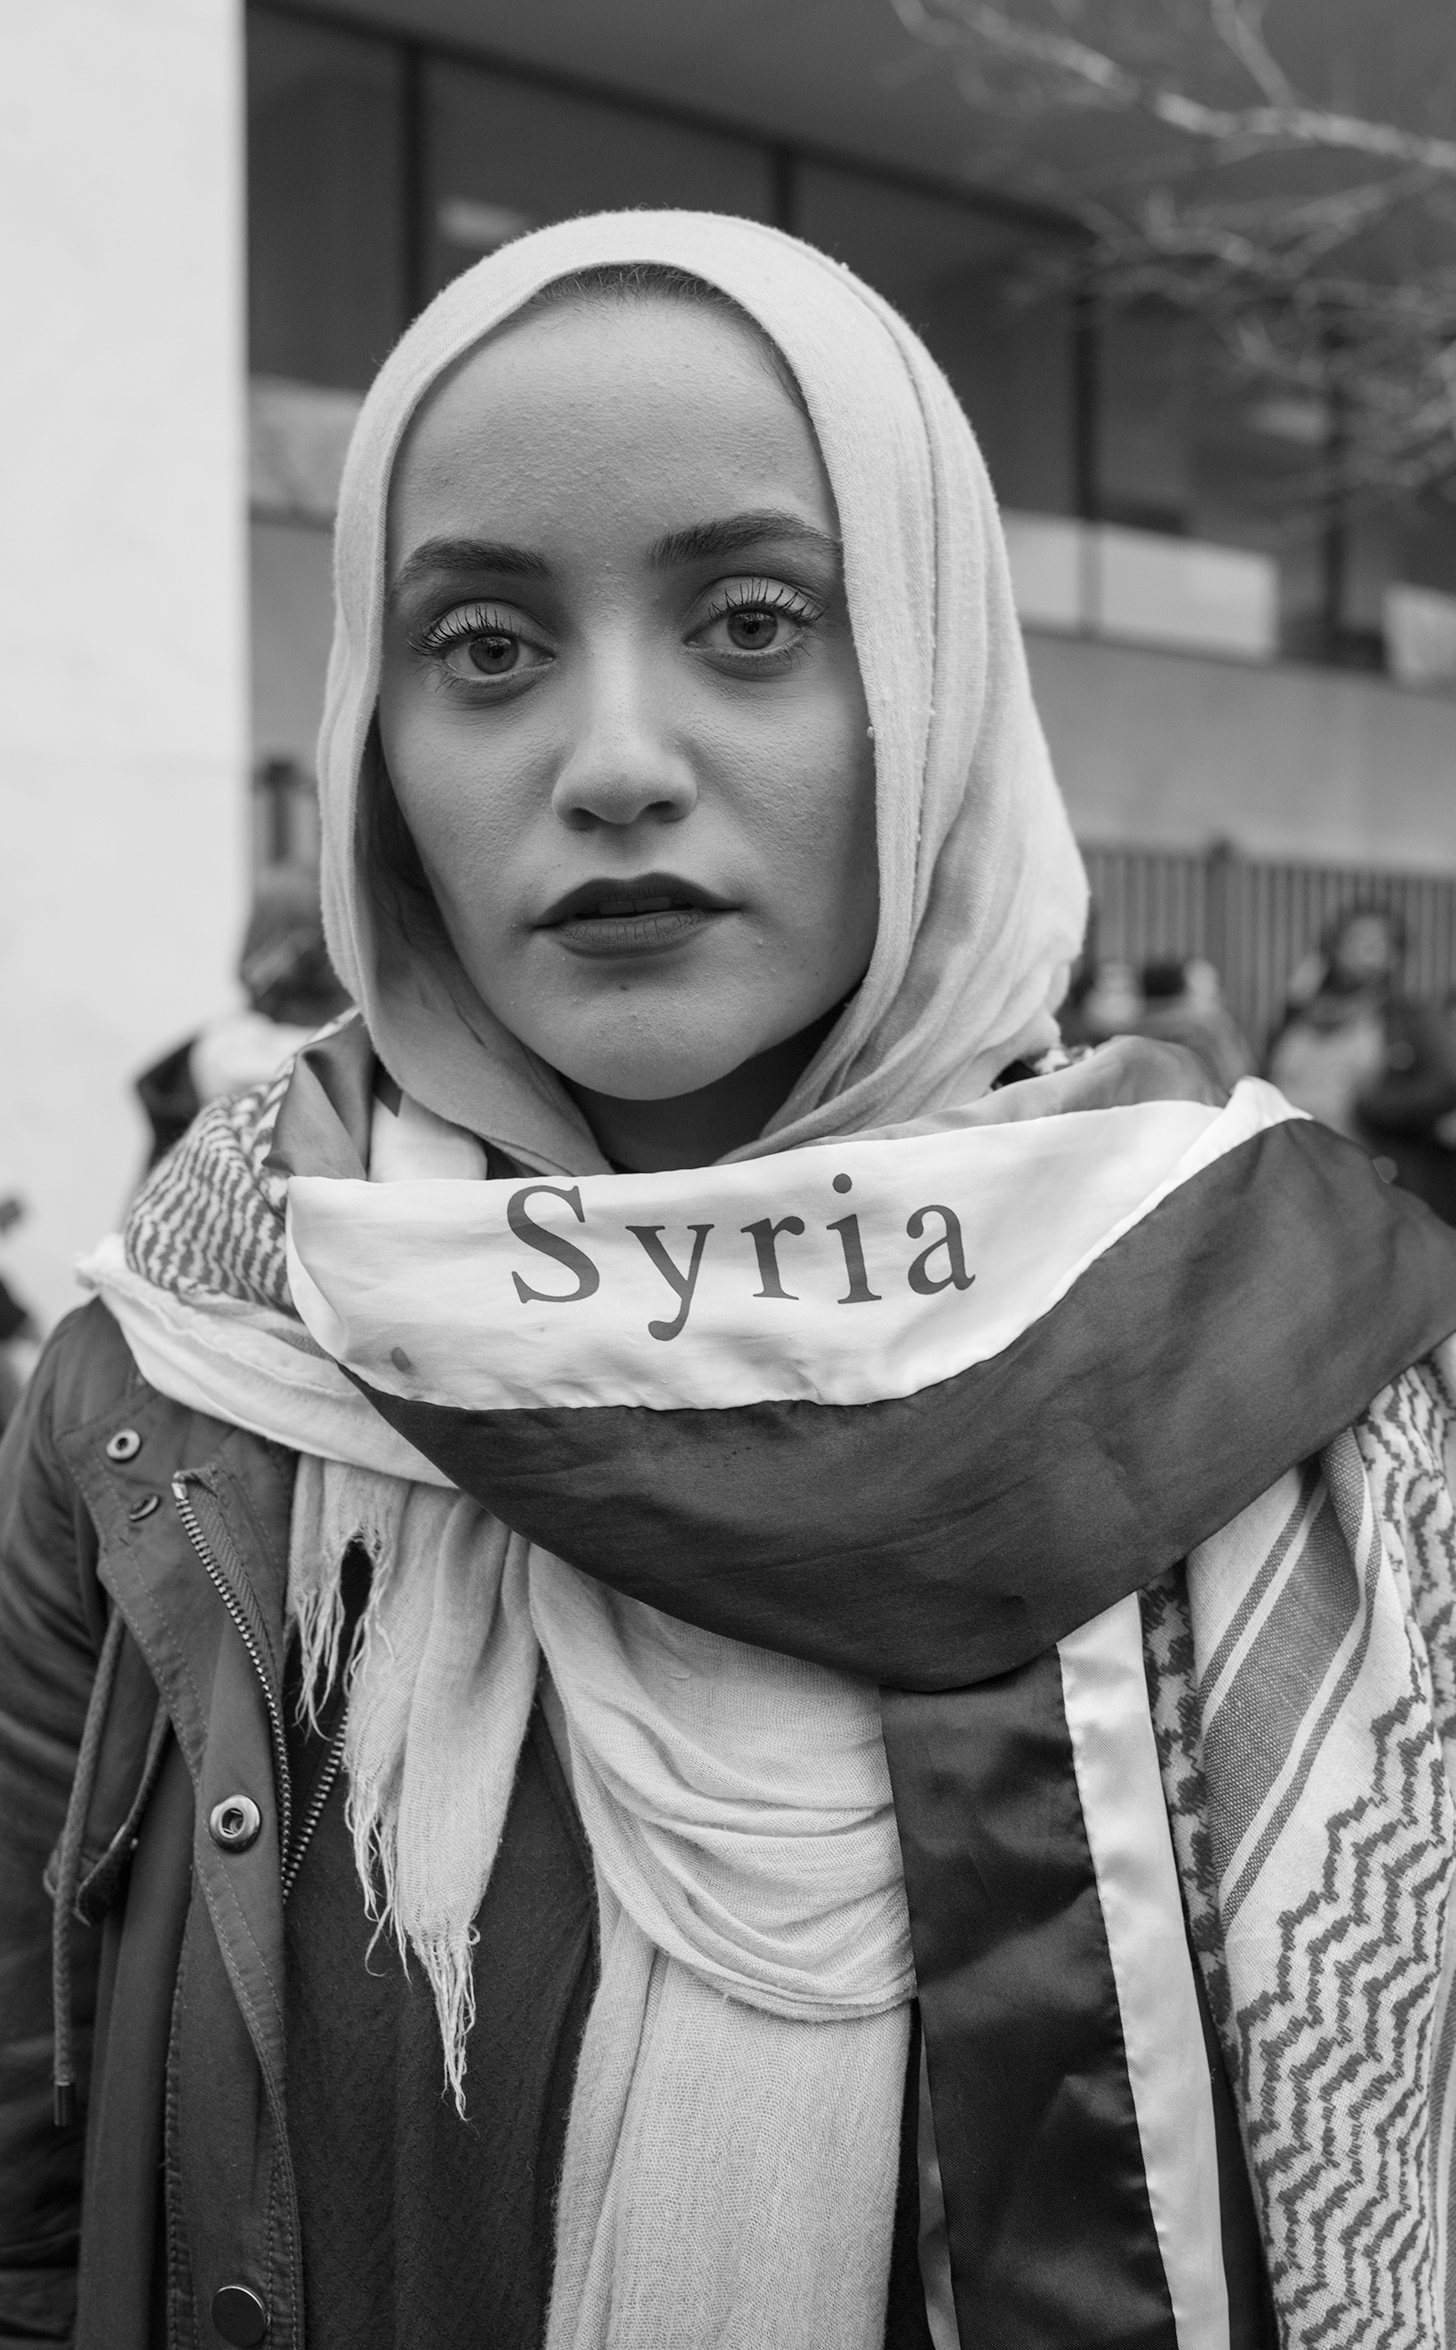 <b>Dana Mosa-Basha, 22, Michigan</b>                                   The crisis [in Syria] is so prevalent right now with the refugees coming in, that's why we're here right now, to be a voice for the people who don't have this safe haven, and these opportunities that we were given. Especially being Muslim, covered, and Syrian,  I want to represent the  people who have their identities stripped of them.  I just graduated from the University of Michigan.